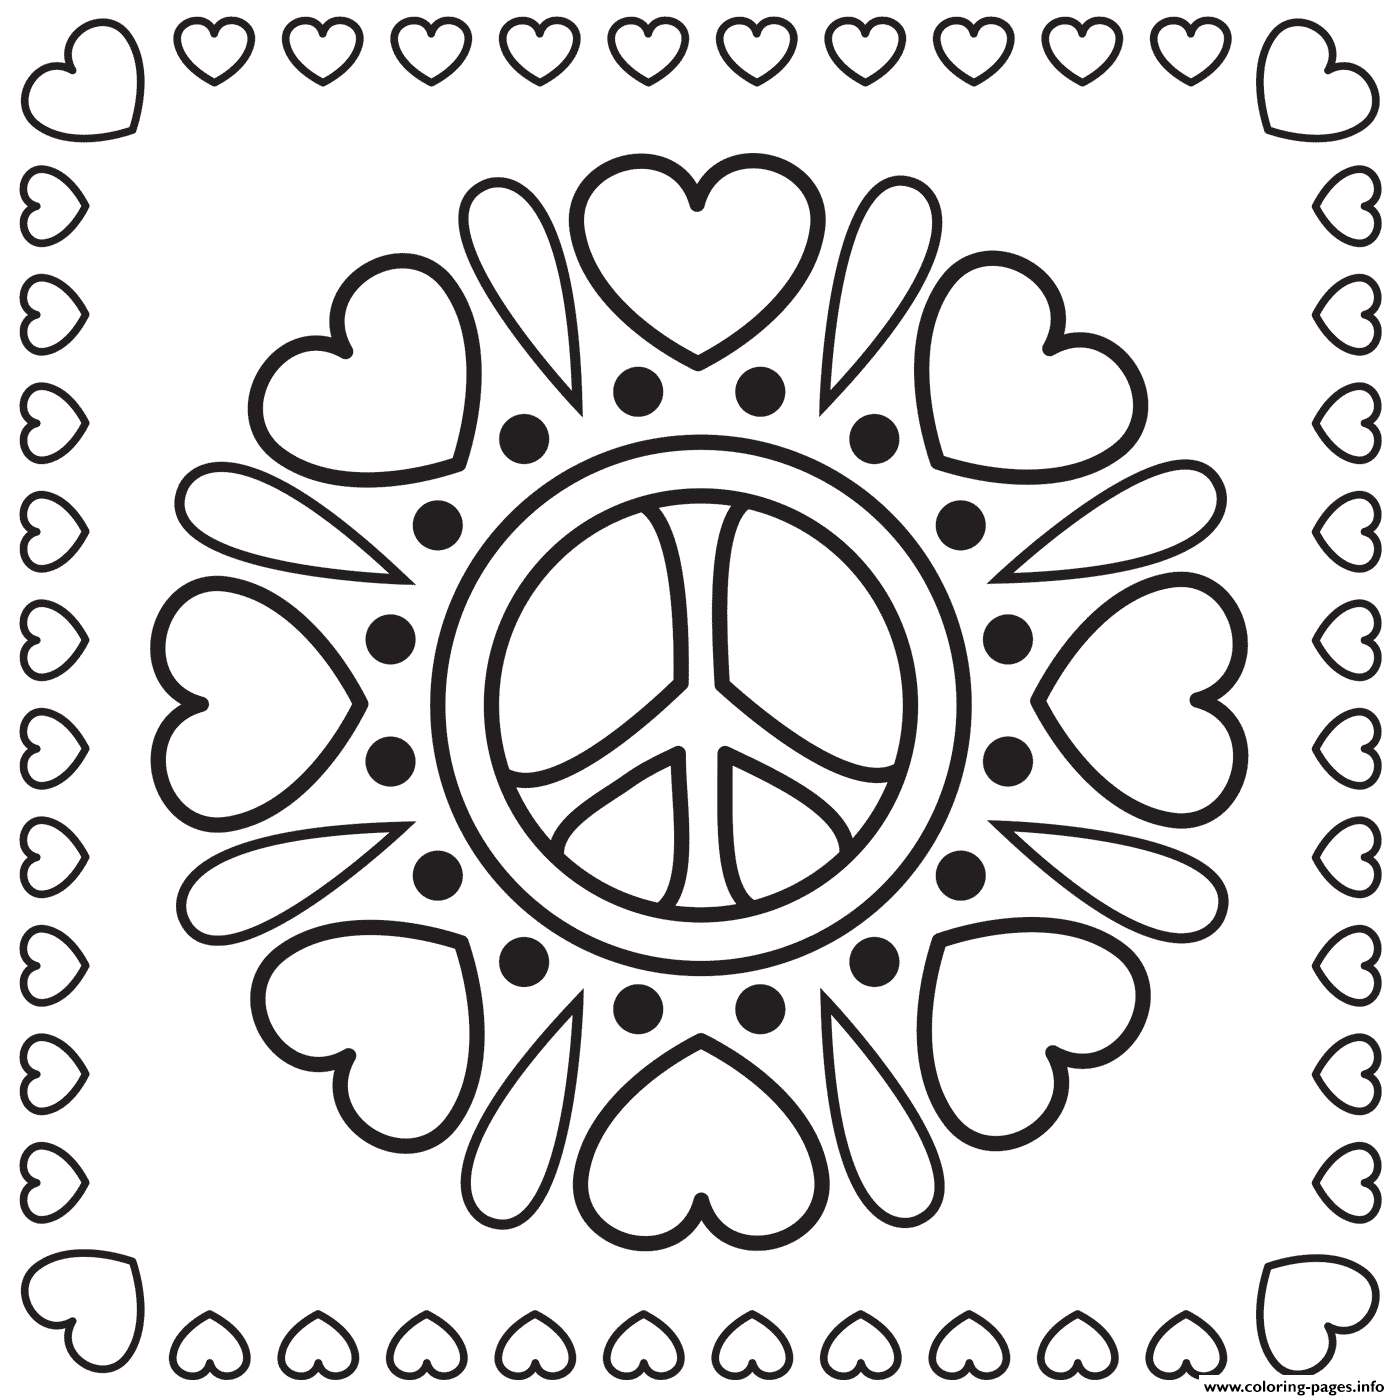 Peace Man ☮ | Cool coloring pages, Easy coloring pages, Coloring pages | 1400x1400